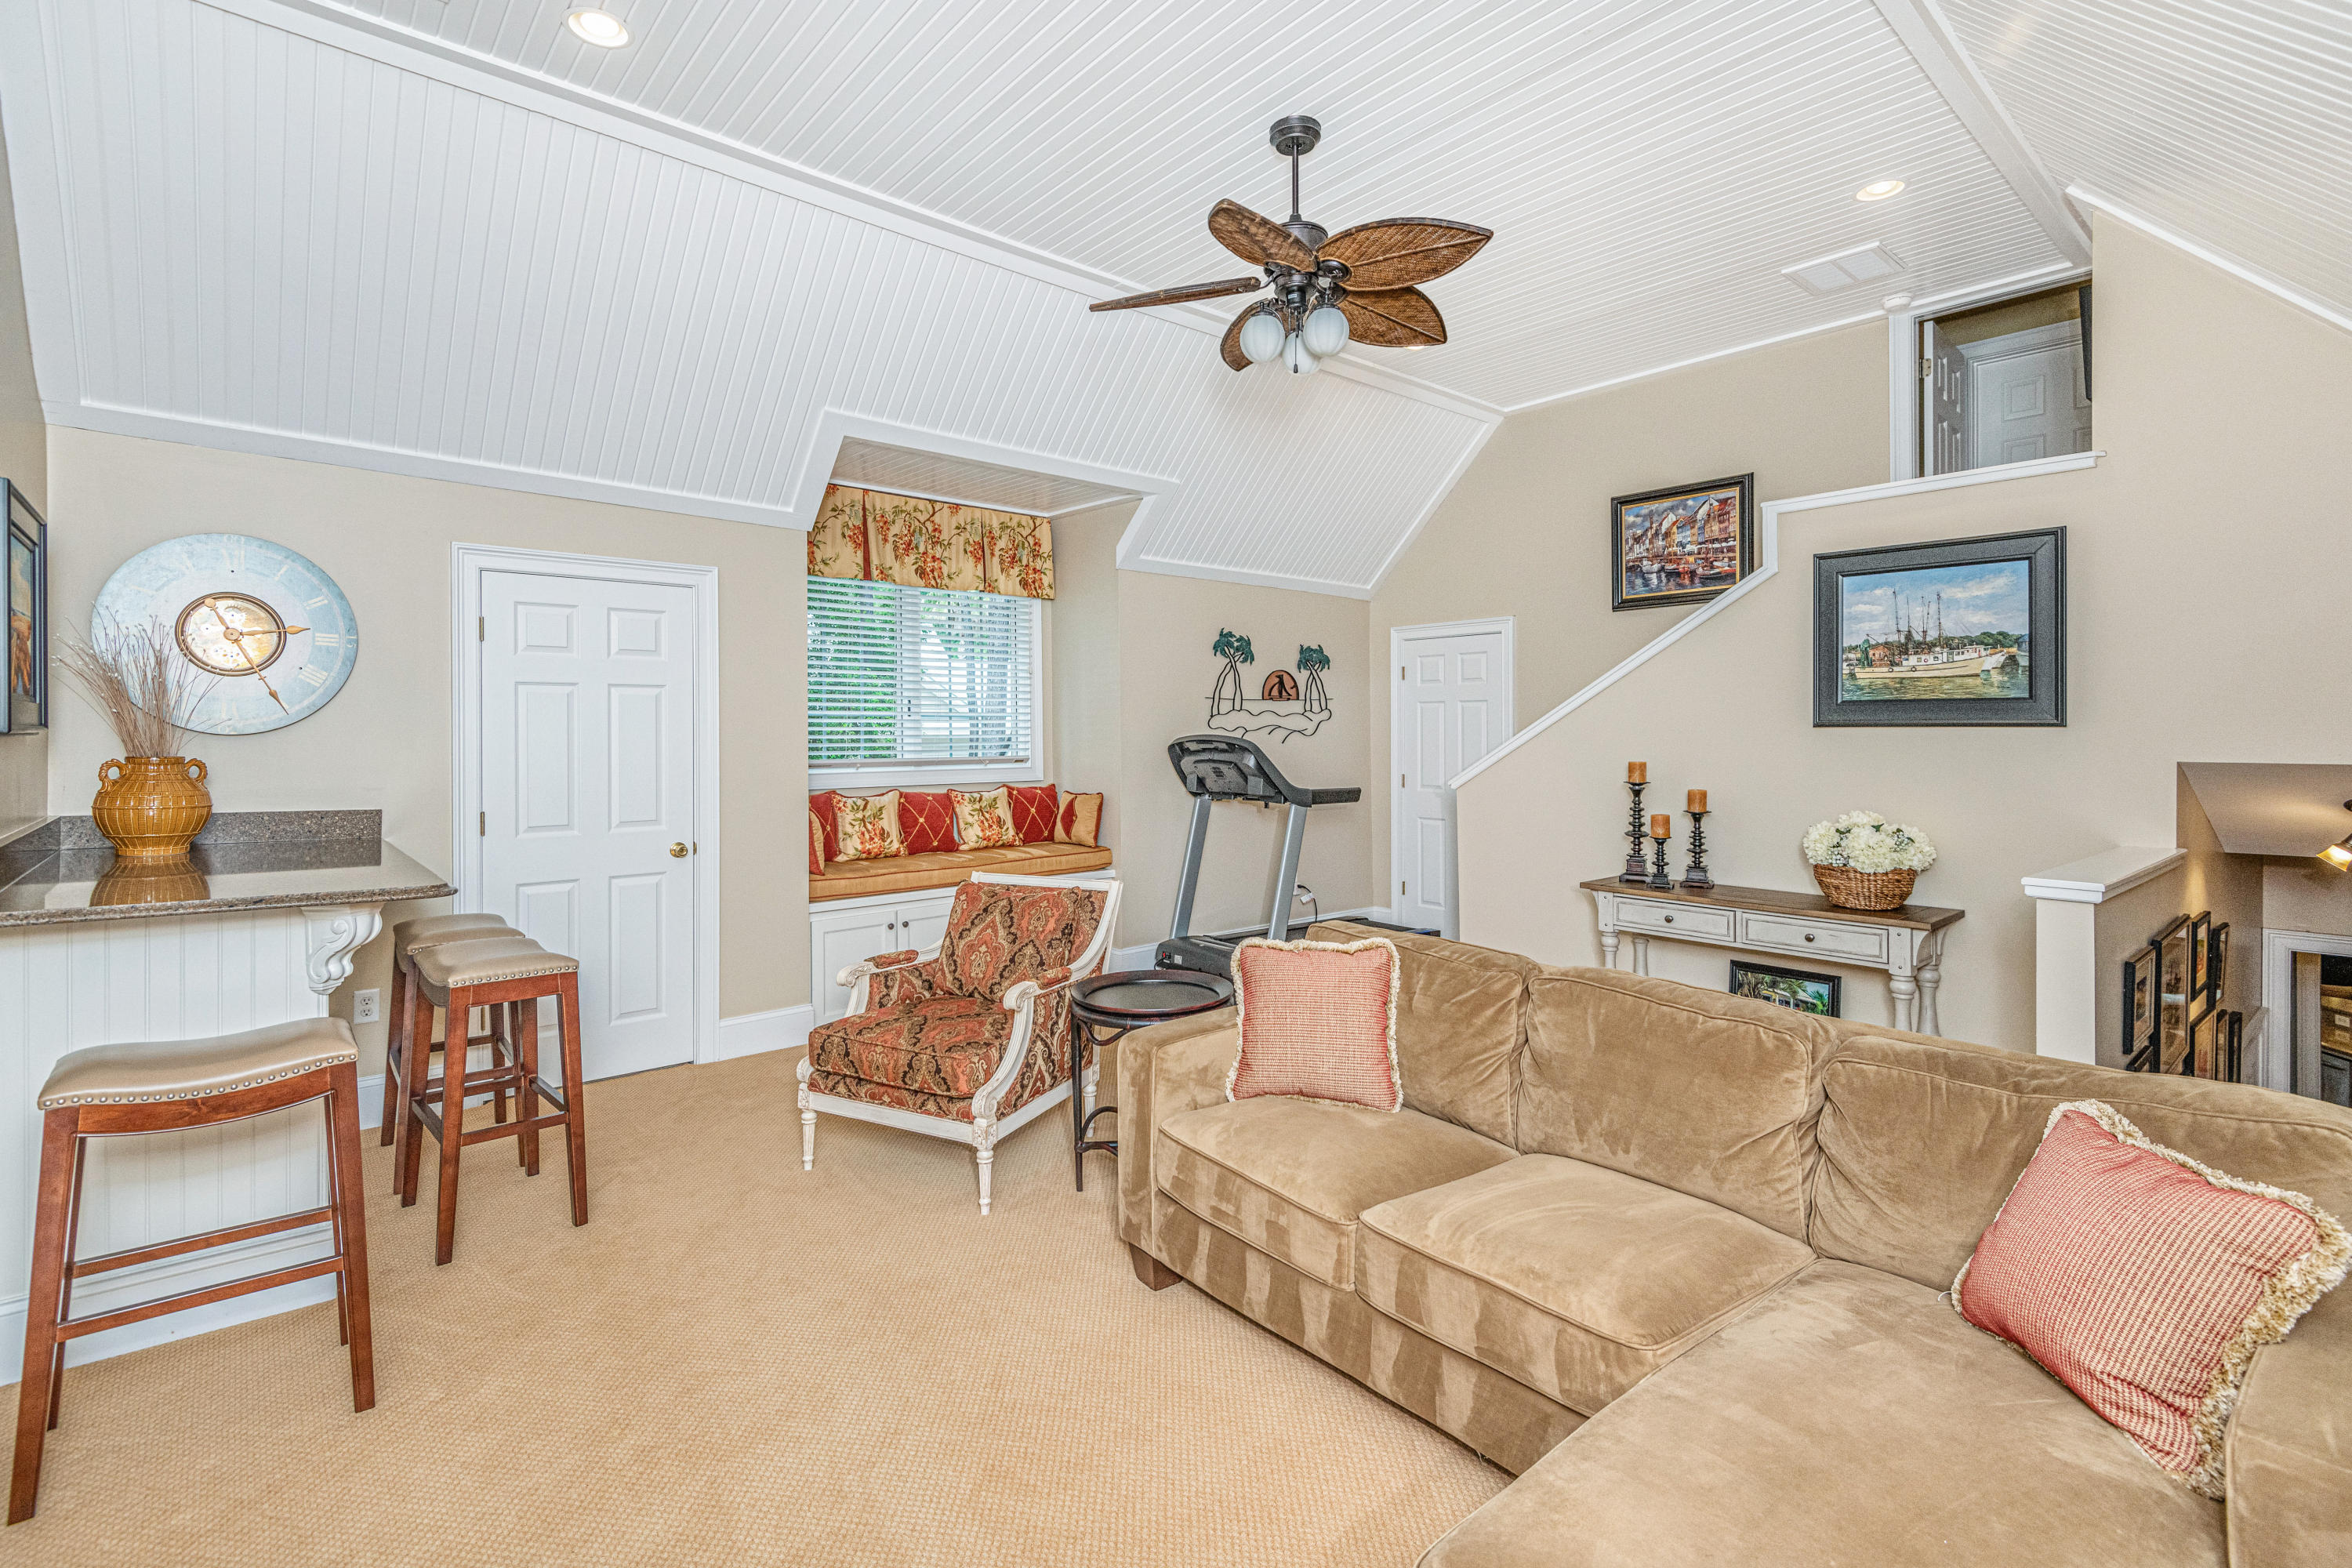 Dunes West Homes For Sale - 1837 Shell Ring, Mount Pleasant, SC - 6